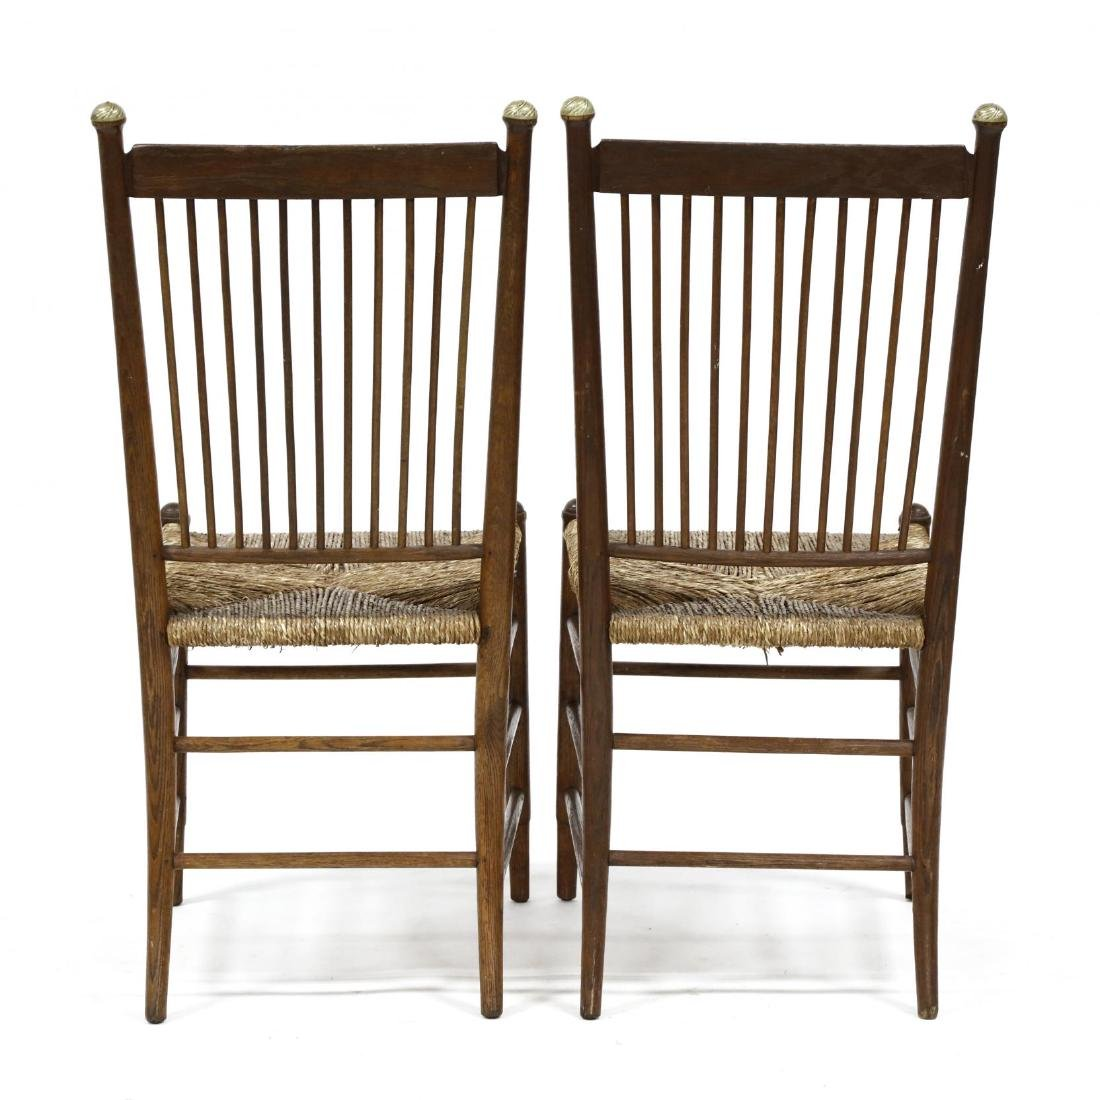 Pair of Antique Oak Spindle Back Chairs - 4